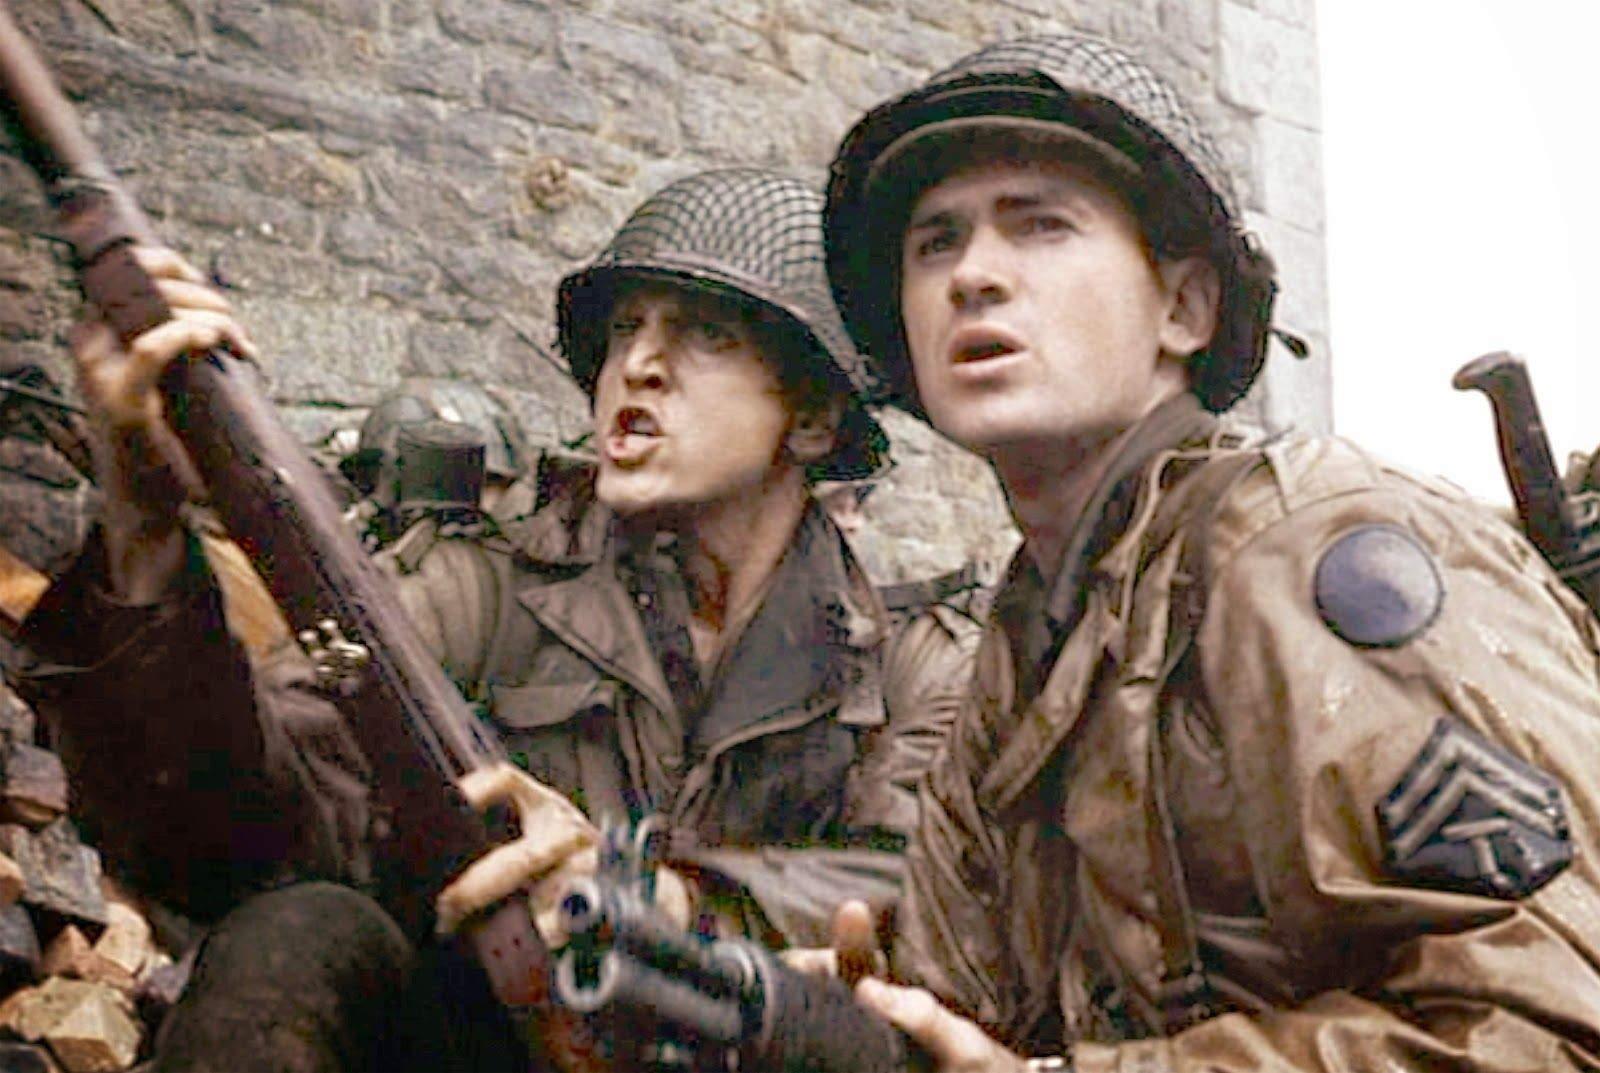 a report on the movie saving private ryan Watch saving private ryan (1998) full movie hd following the normandy landings, a group of us soldiers go behind enemy lines to retrieve a paratrooper whose.